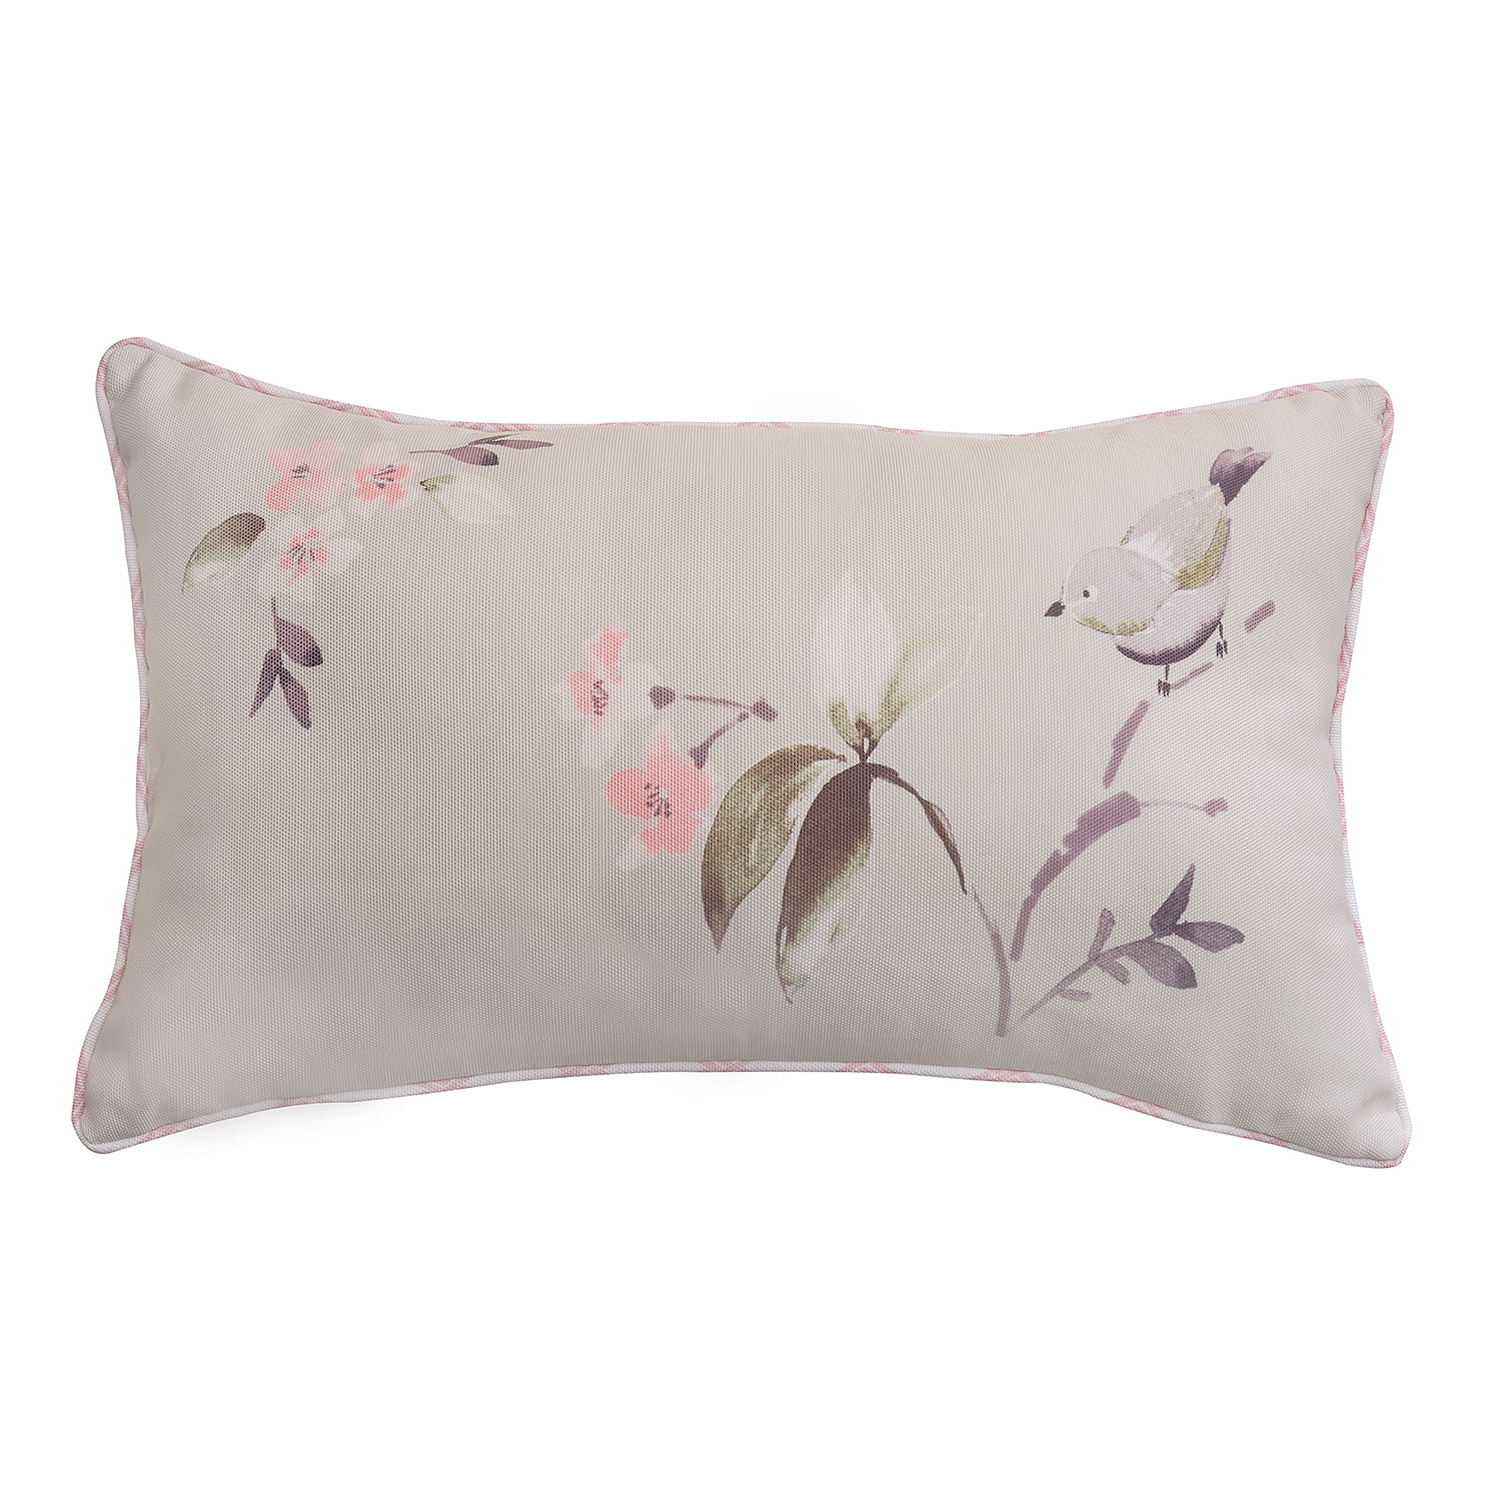 Amelie Coral Filled Boudoir Cushion